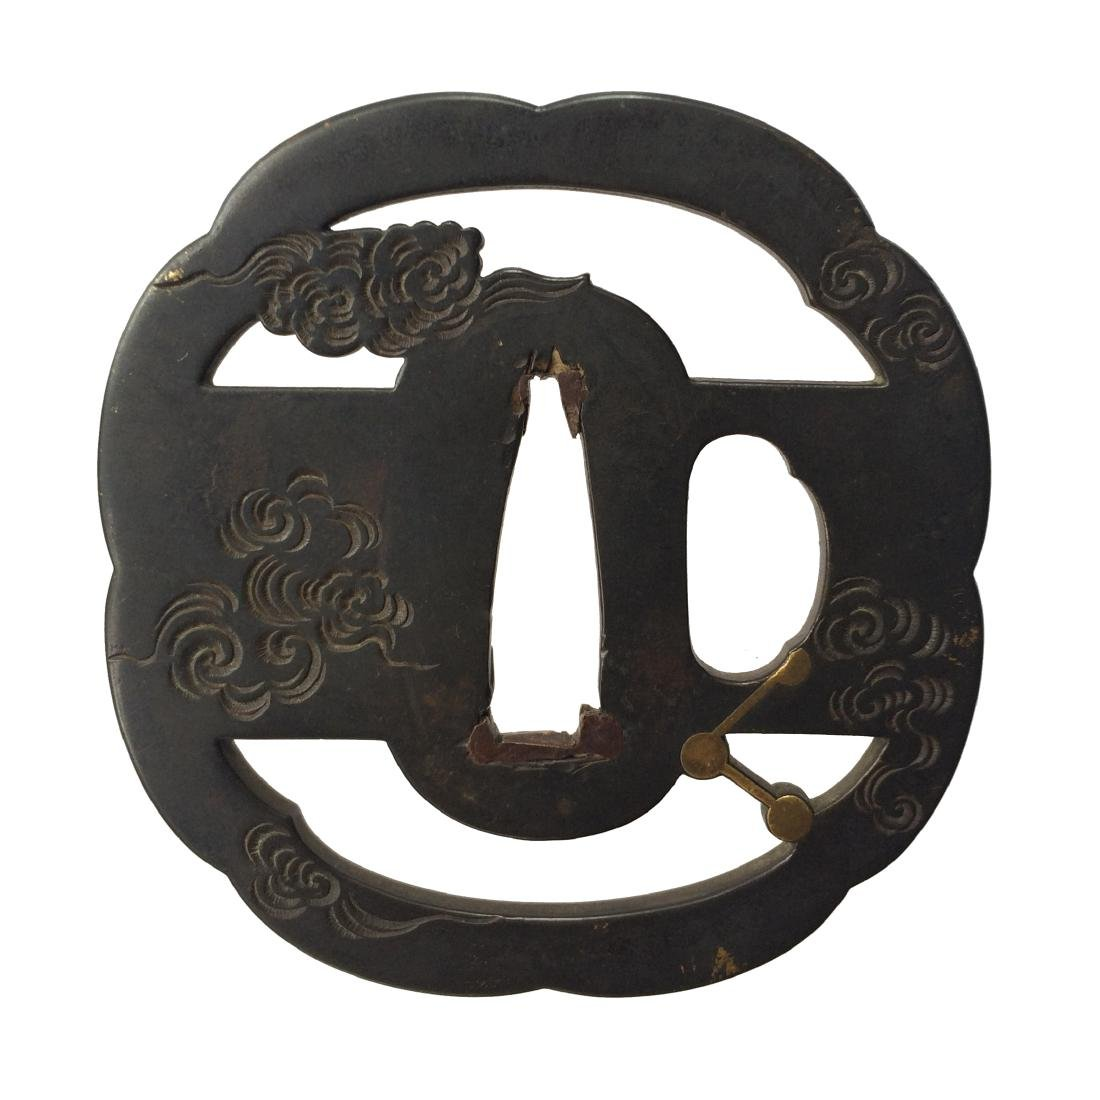 Signed kinko tsuba with celestial motif by Umetada